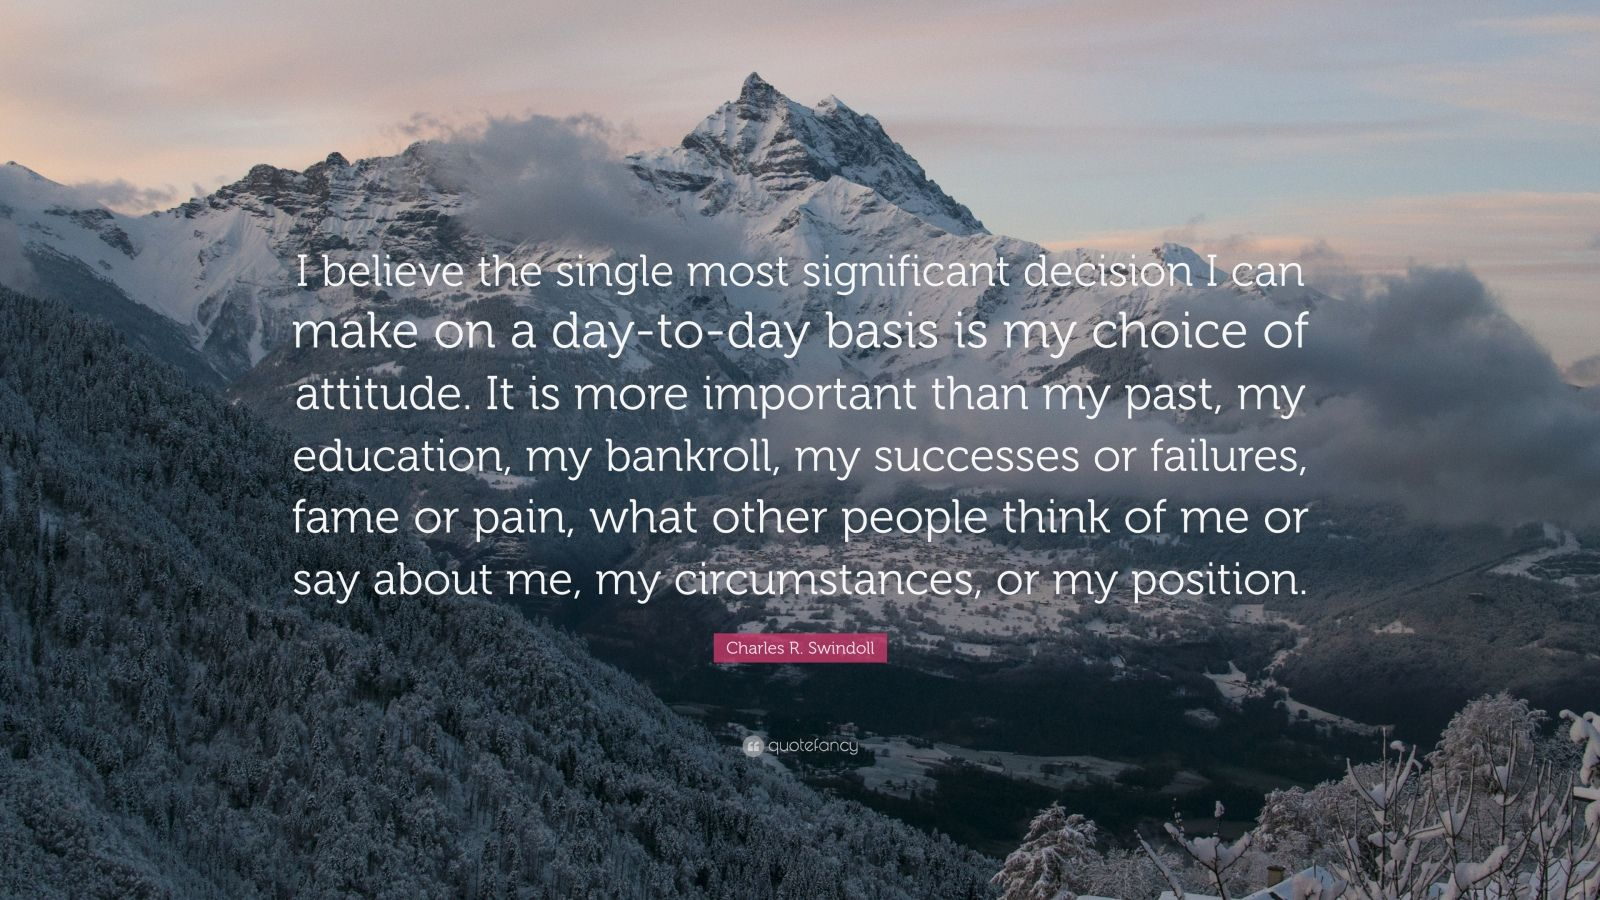 "Charles R. Swindoll Quote: ""I believe the single most significant decision I can make on a day-to-day basis is my choice of attitude. It is more important than my past, my education, my bankroll, my successes or failures, fame or pain, what other people think of me or say about me, my circumstances, or my position."""